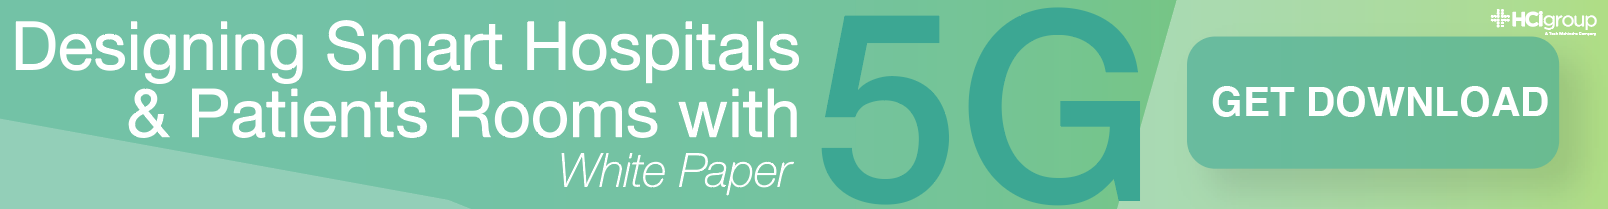 5G Whitepaper Download